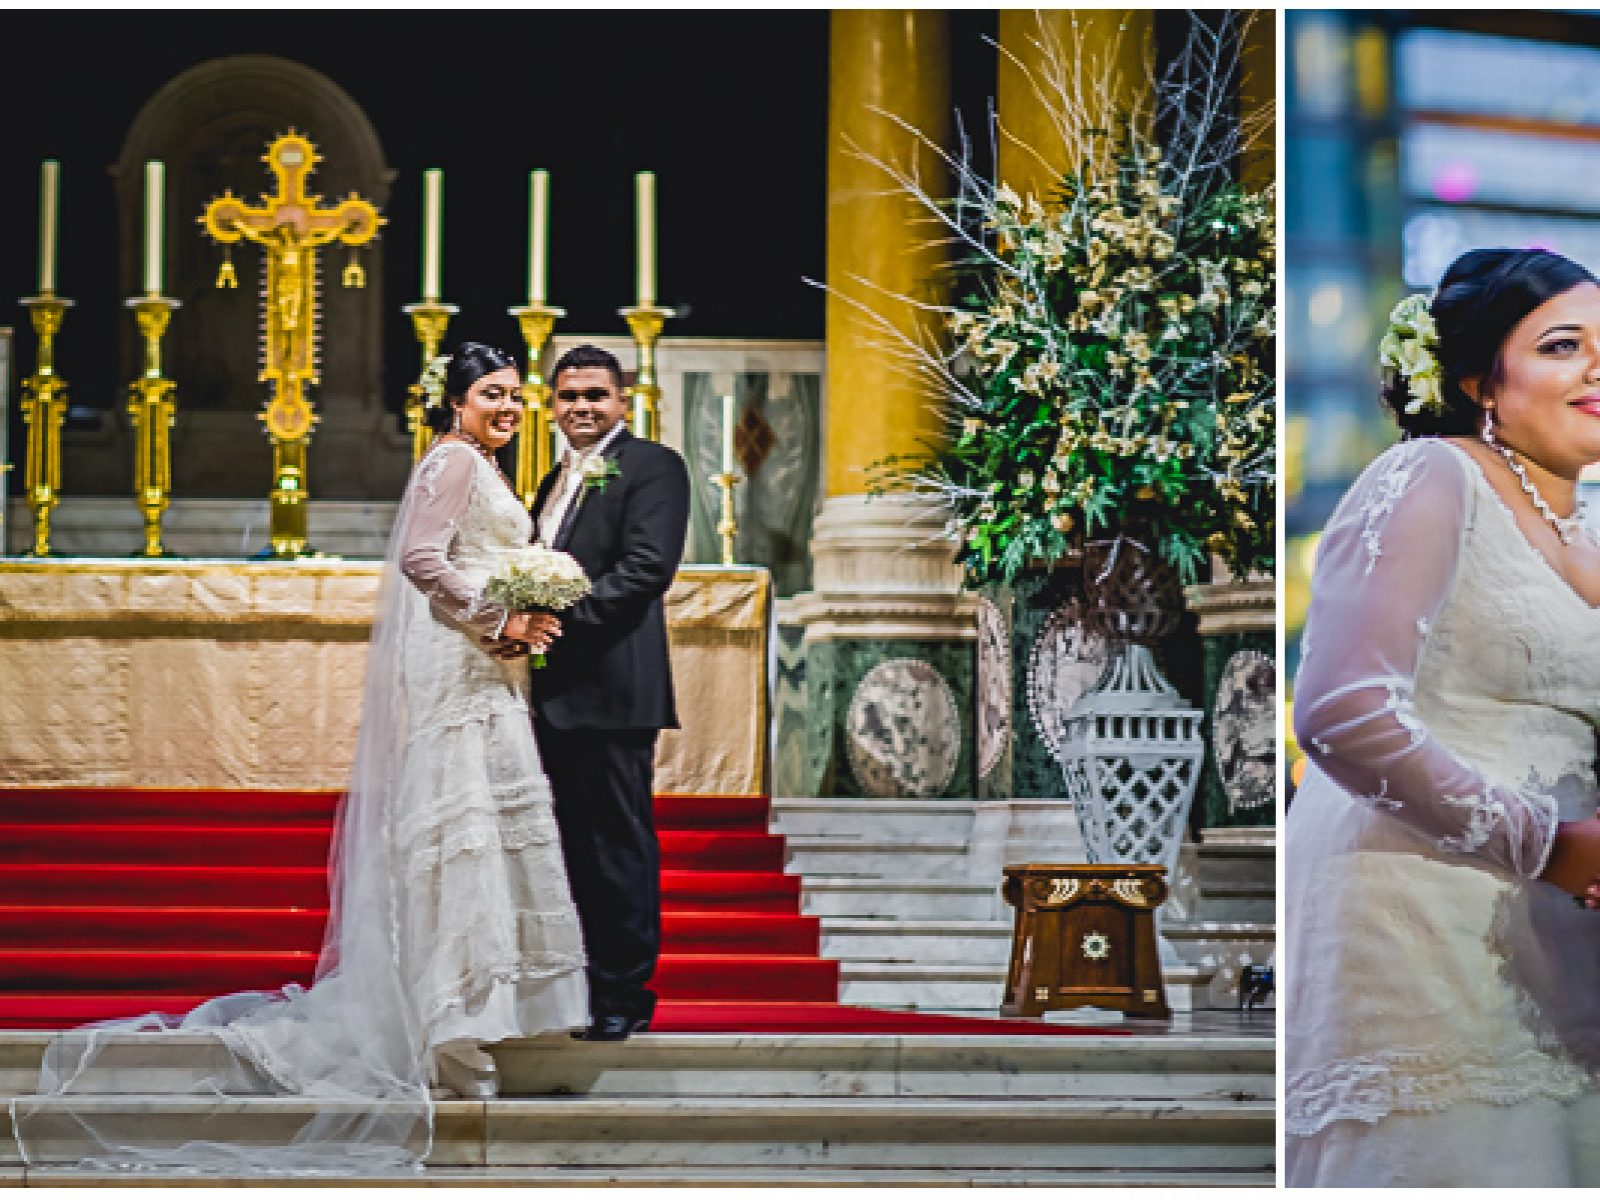 65 1600x1200 - Darshani and Anthony - wedding photographer in London